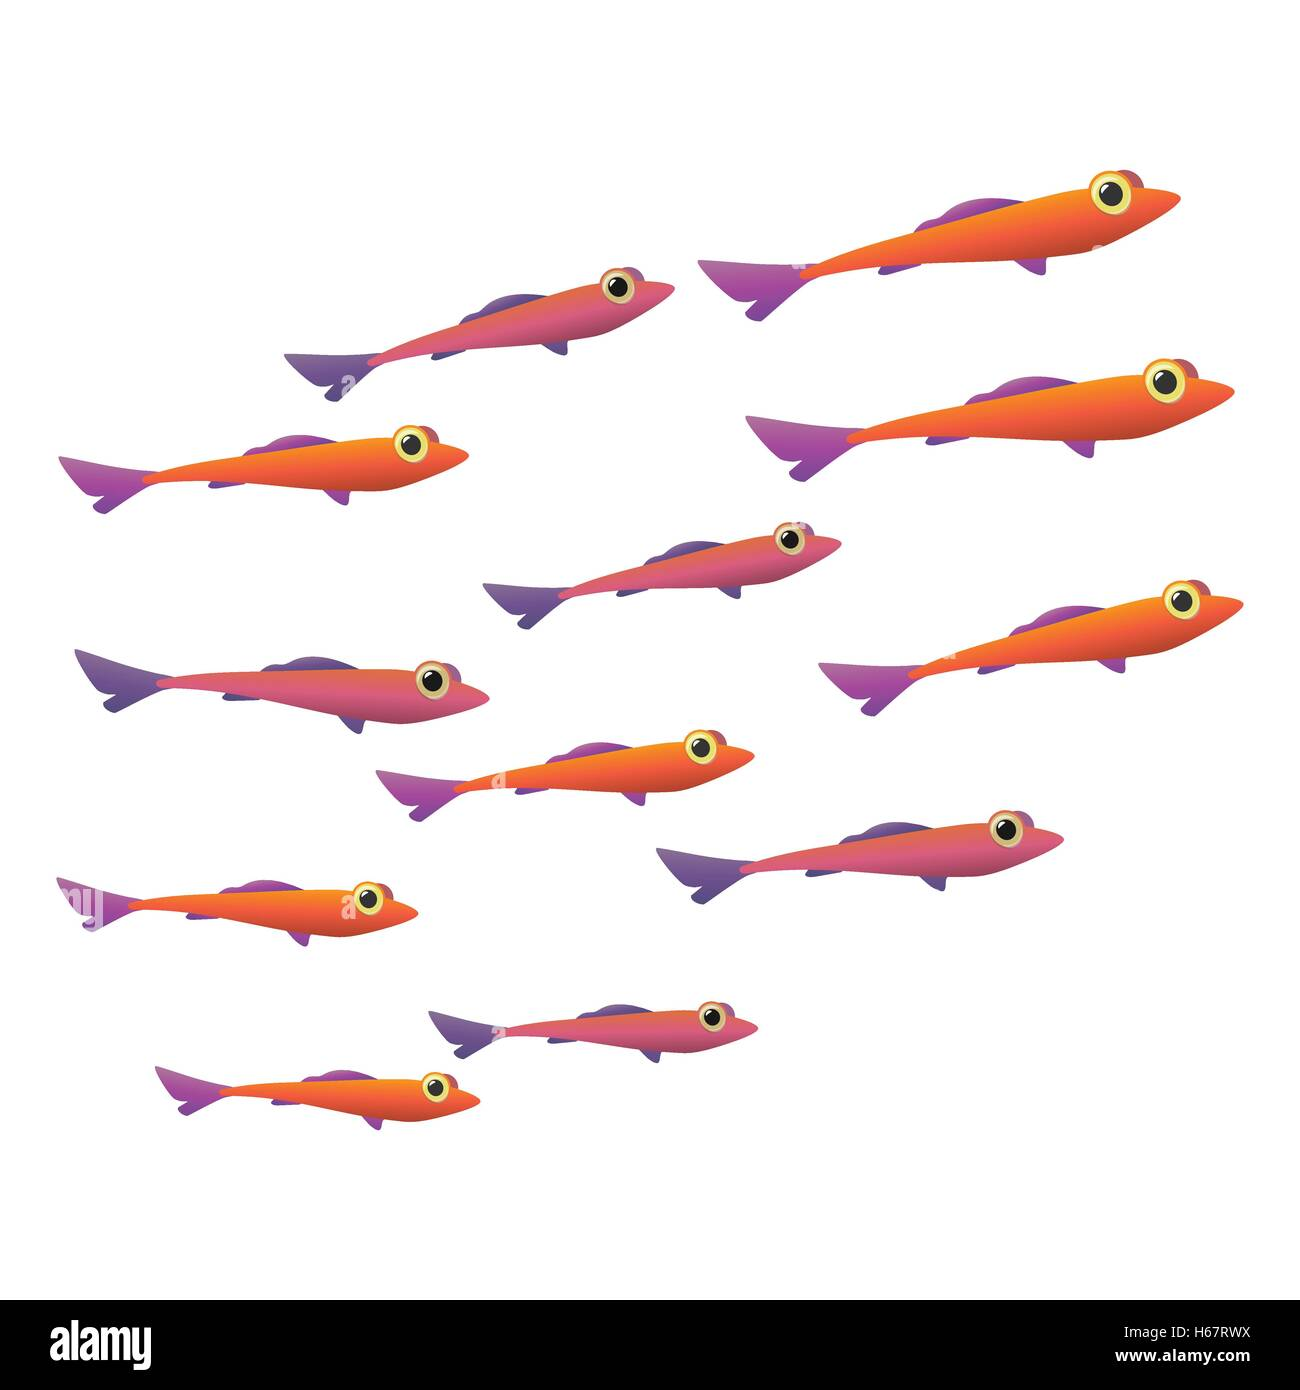 Group of small fish icon - Stock Image